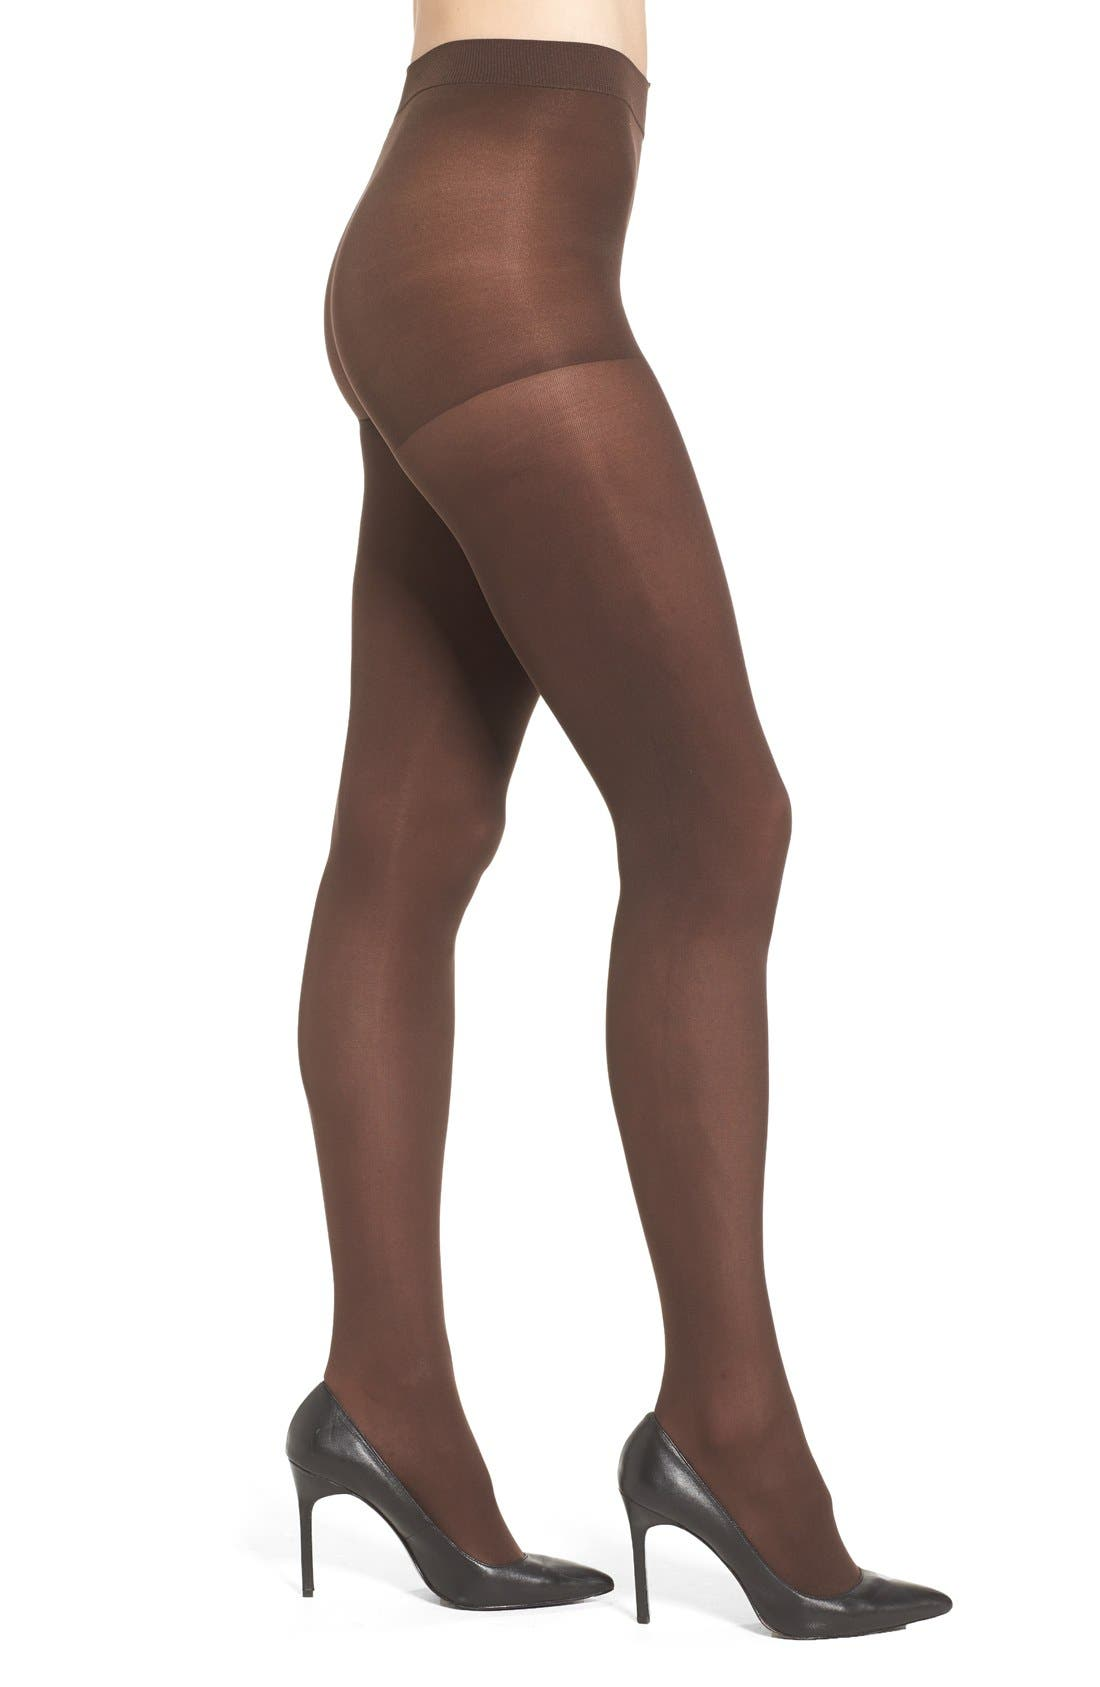 'Everyday' Opaque Tights,                             Main thumbnail 2, color,